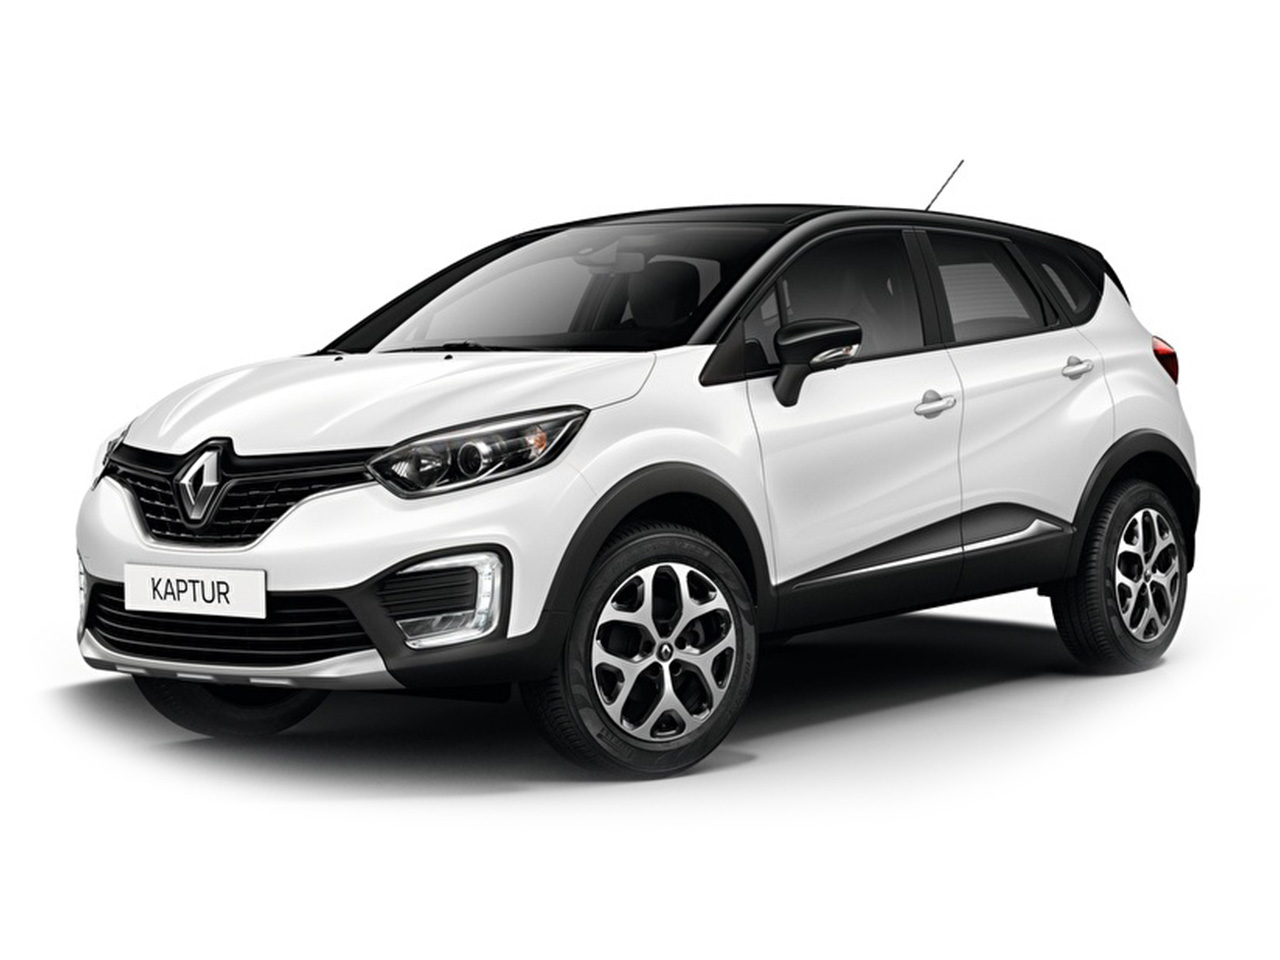 2018 renault captur prices in uae gulf specs amp reviews